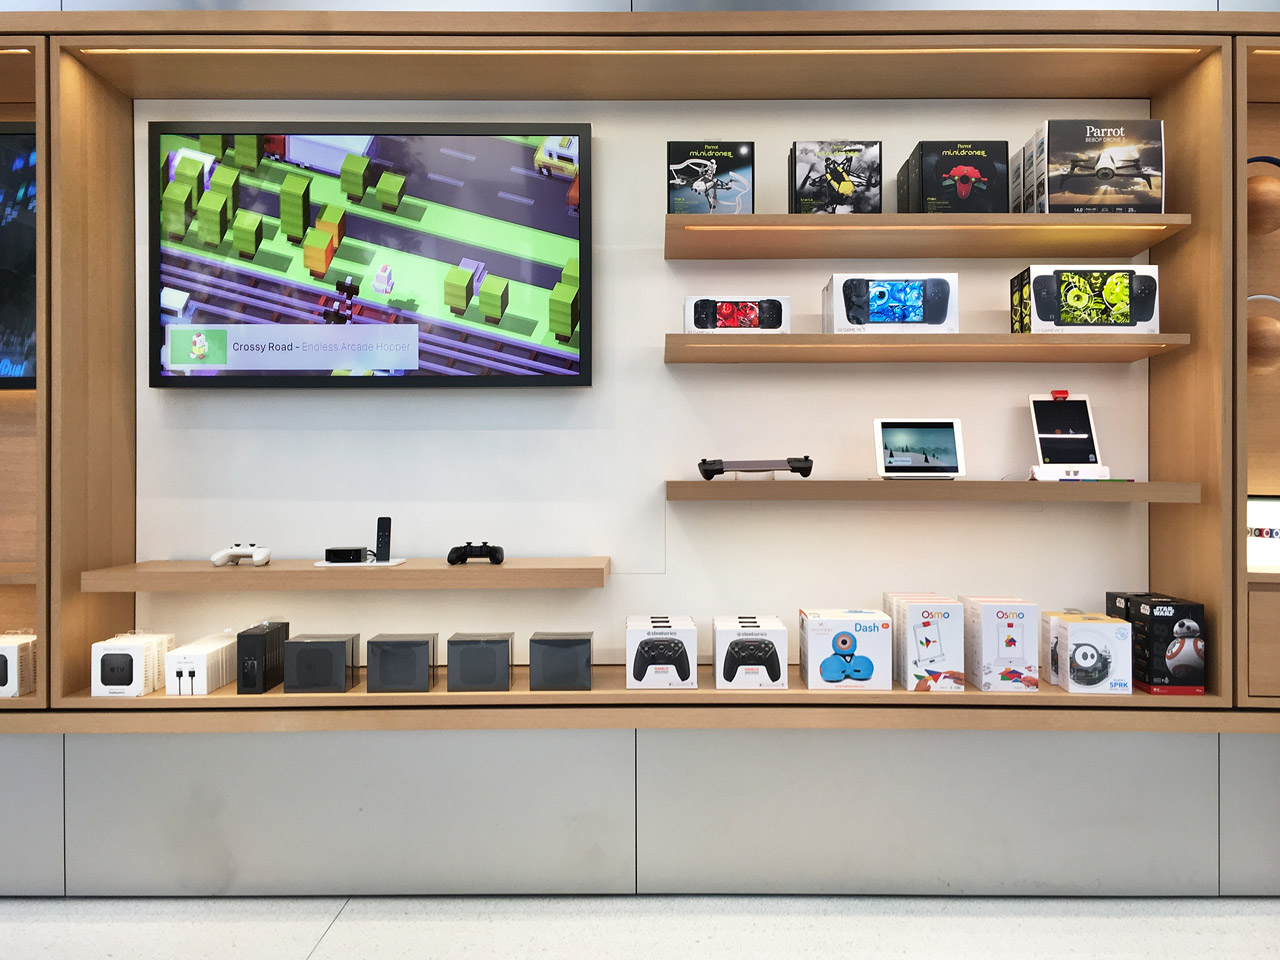 Apple Store Gaming Section with Controller Hands-on